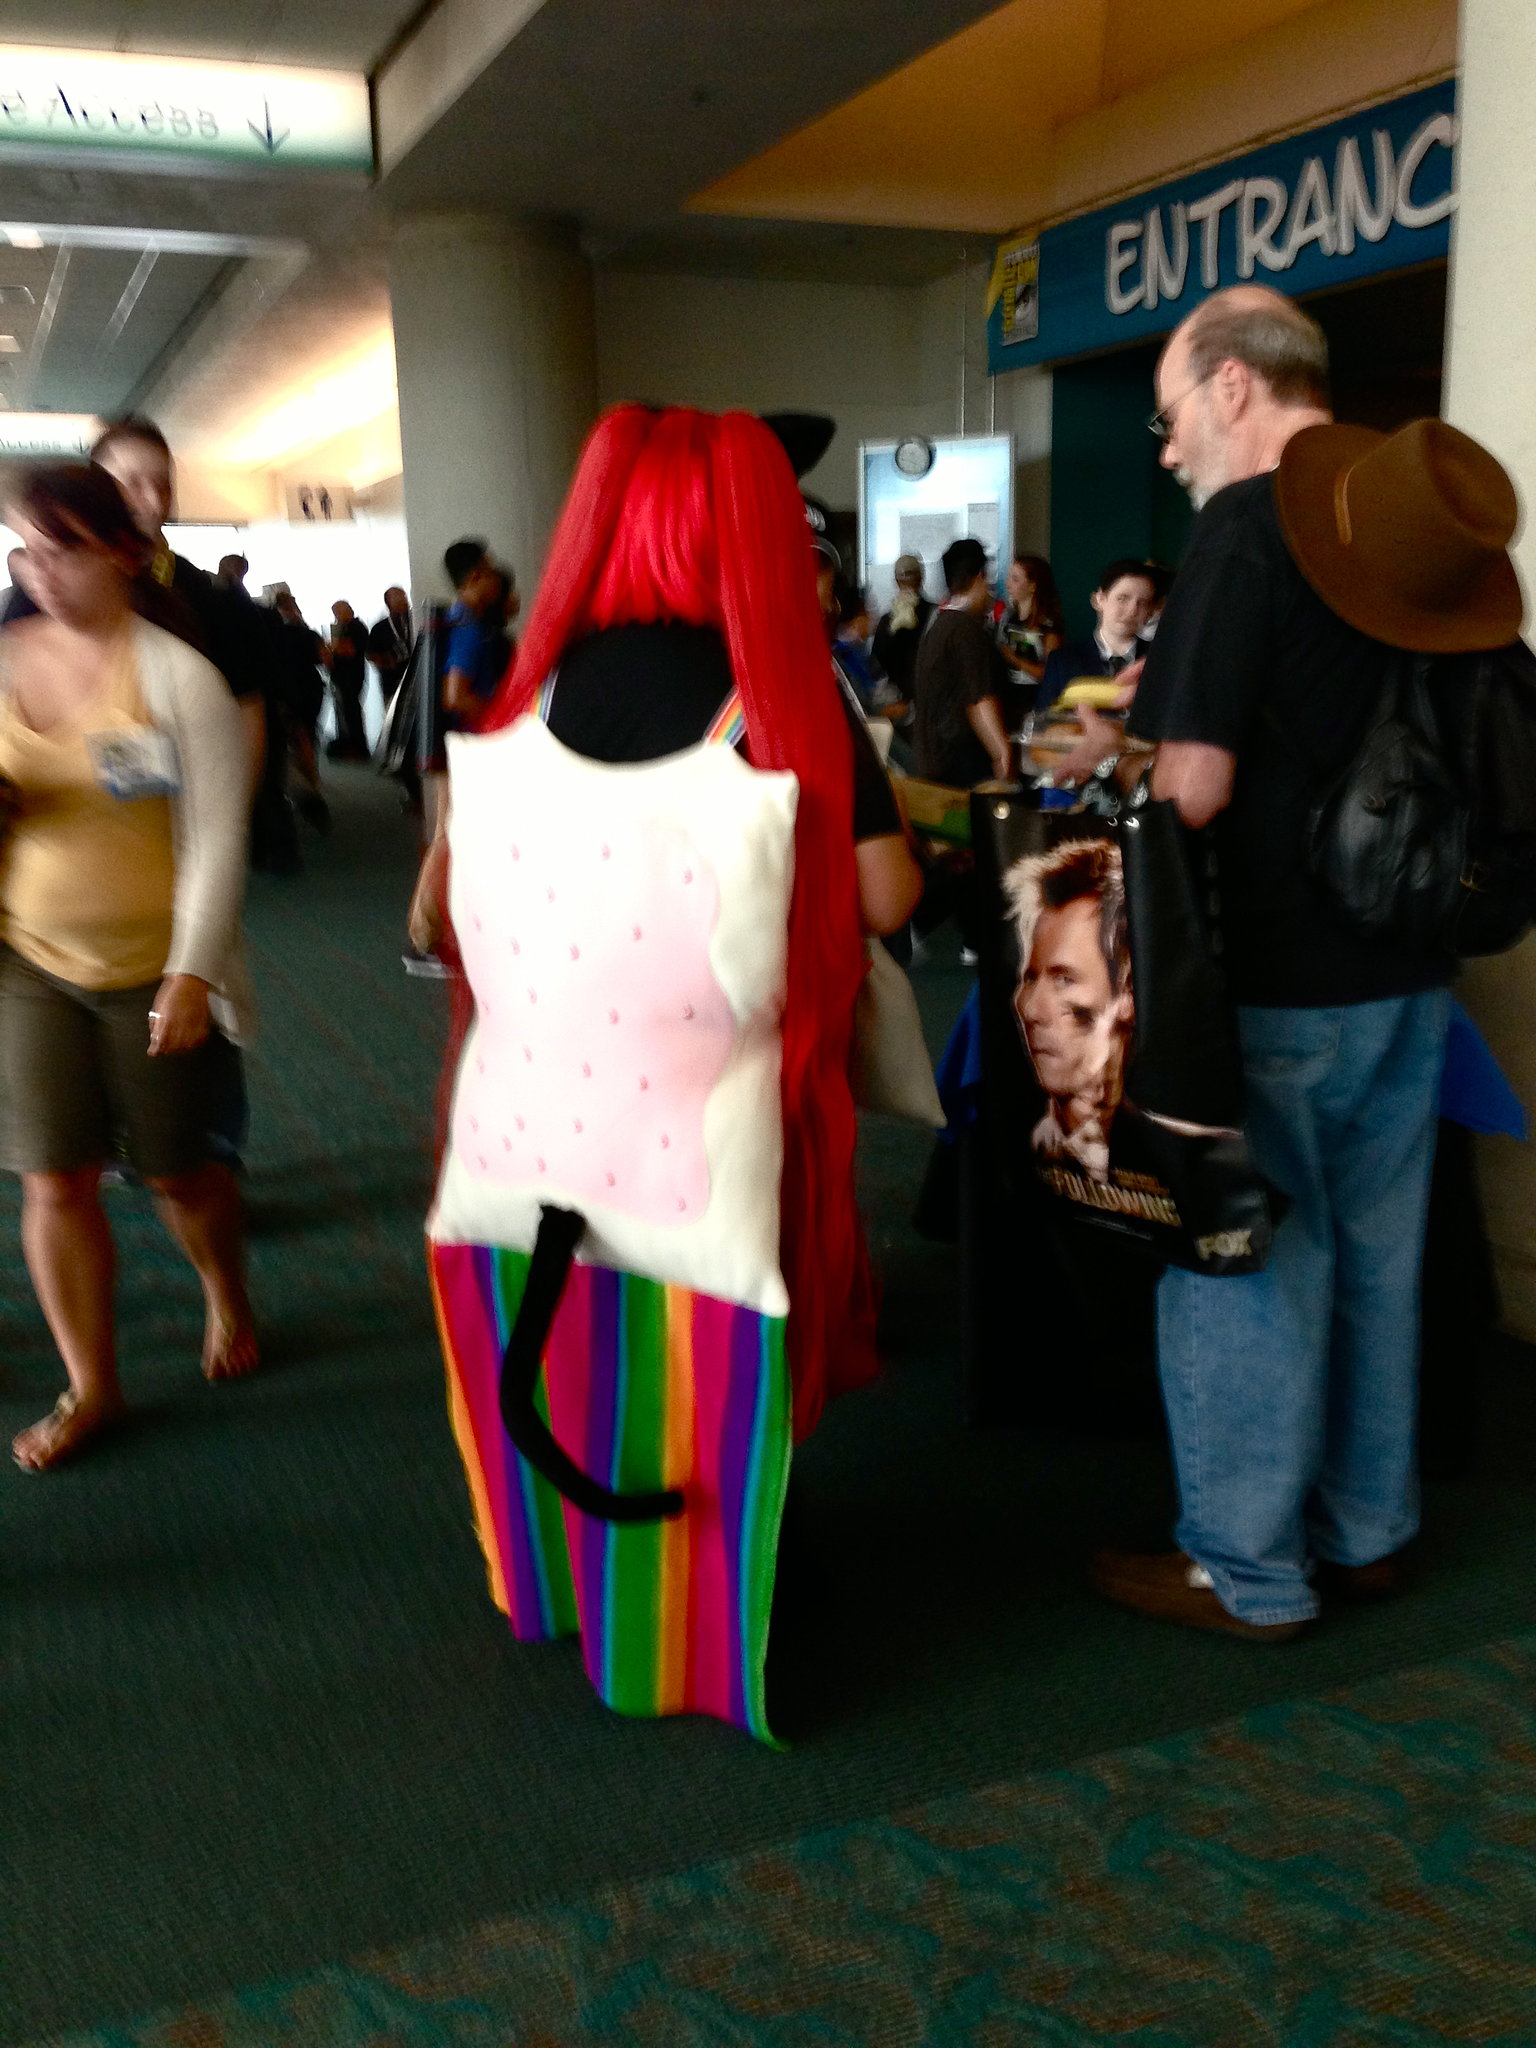 Nyan Cat, representing everything good in the world with a Pop-Tart body and rainbow flying track, is always welcome at Comic-Con.